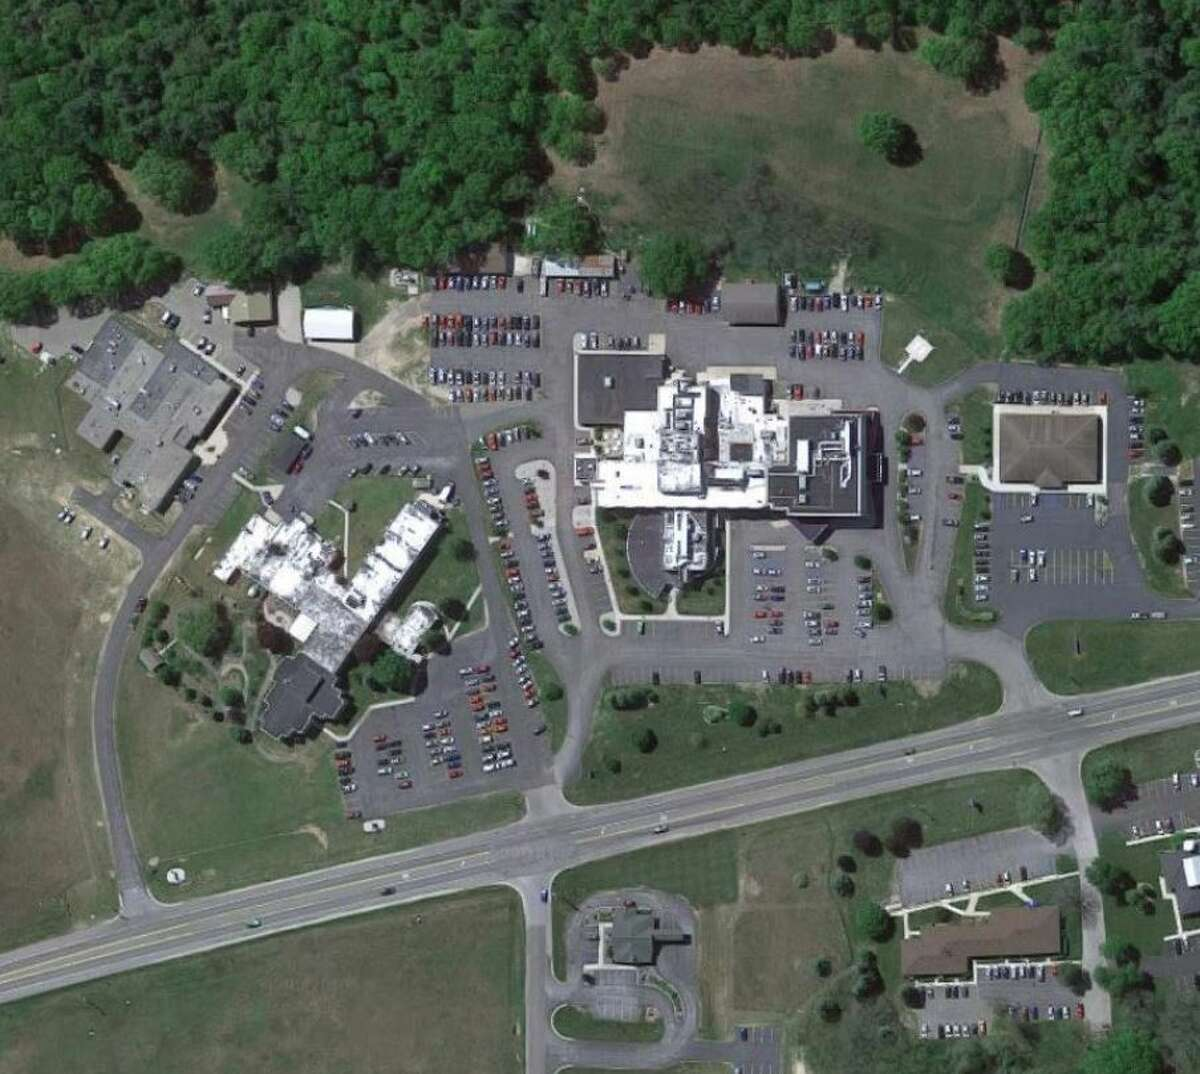 Satellite imagery shows the current outline of the Manistee County Medical Care facility (left) next to Munson Healthcare Manistee Hospital.